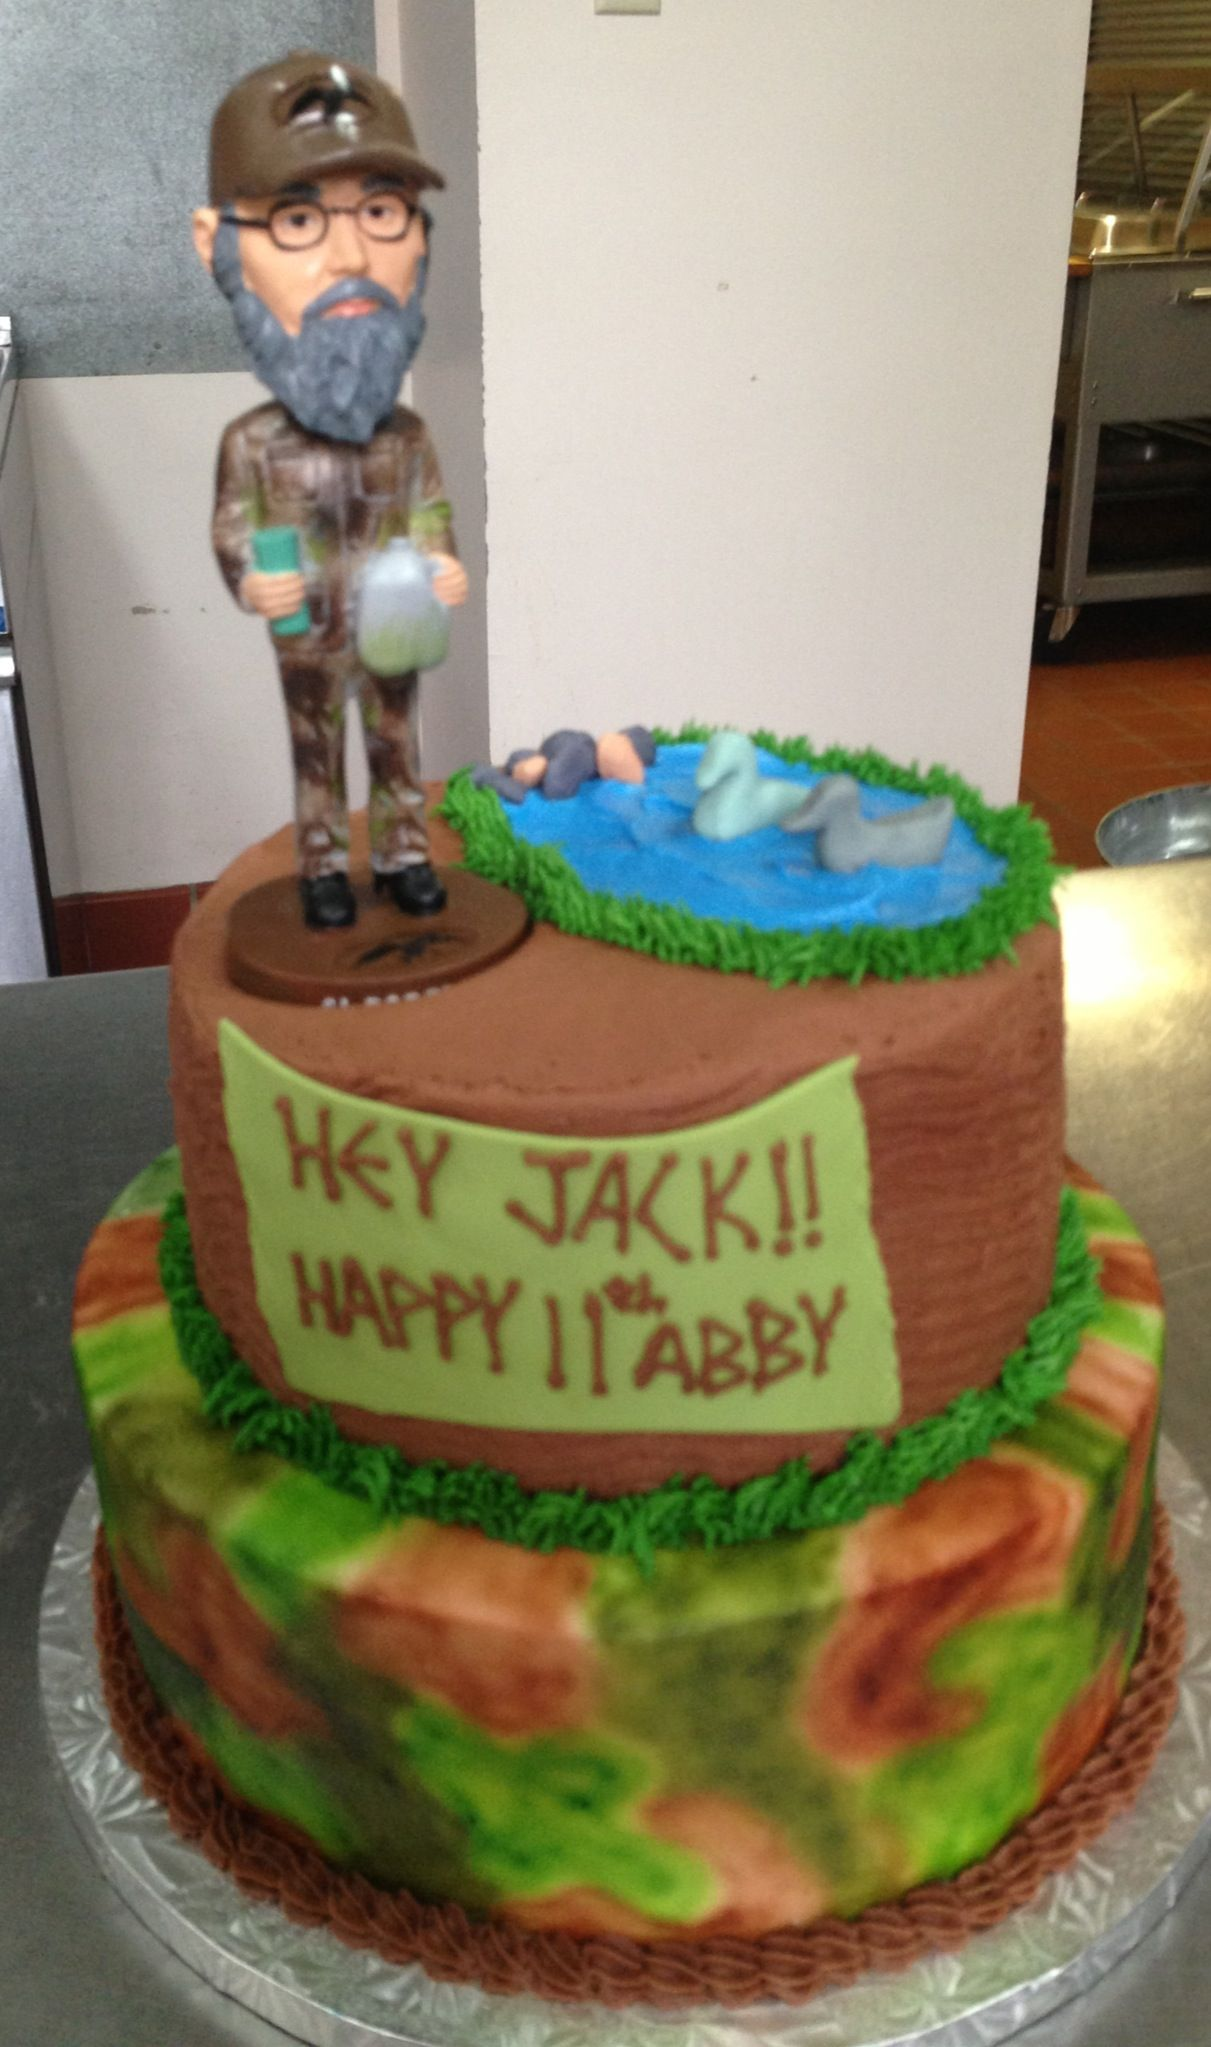 Outstanding Duck Dynasty And Uncle Si Now Thats A Cake Jack Cake Personalised Birthday Cards Veneteletsinfo